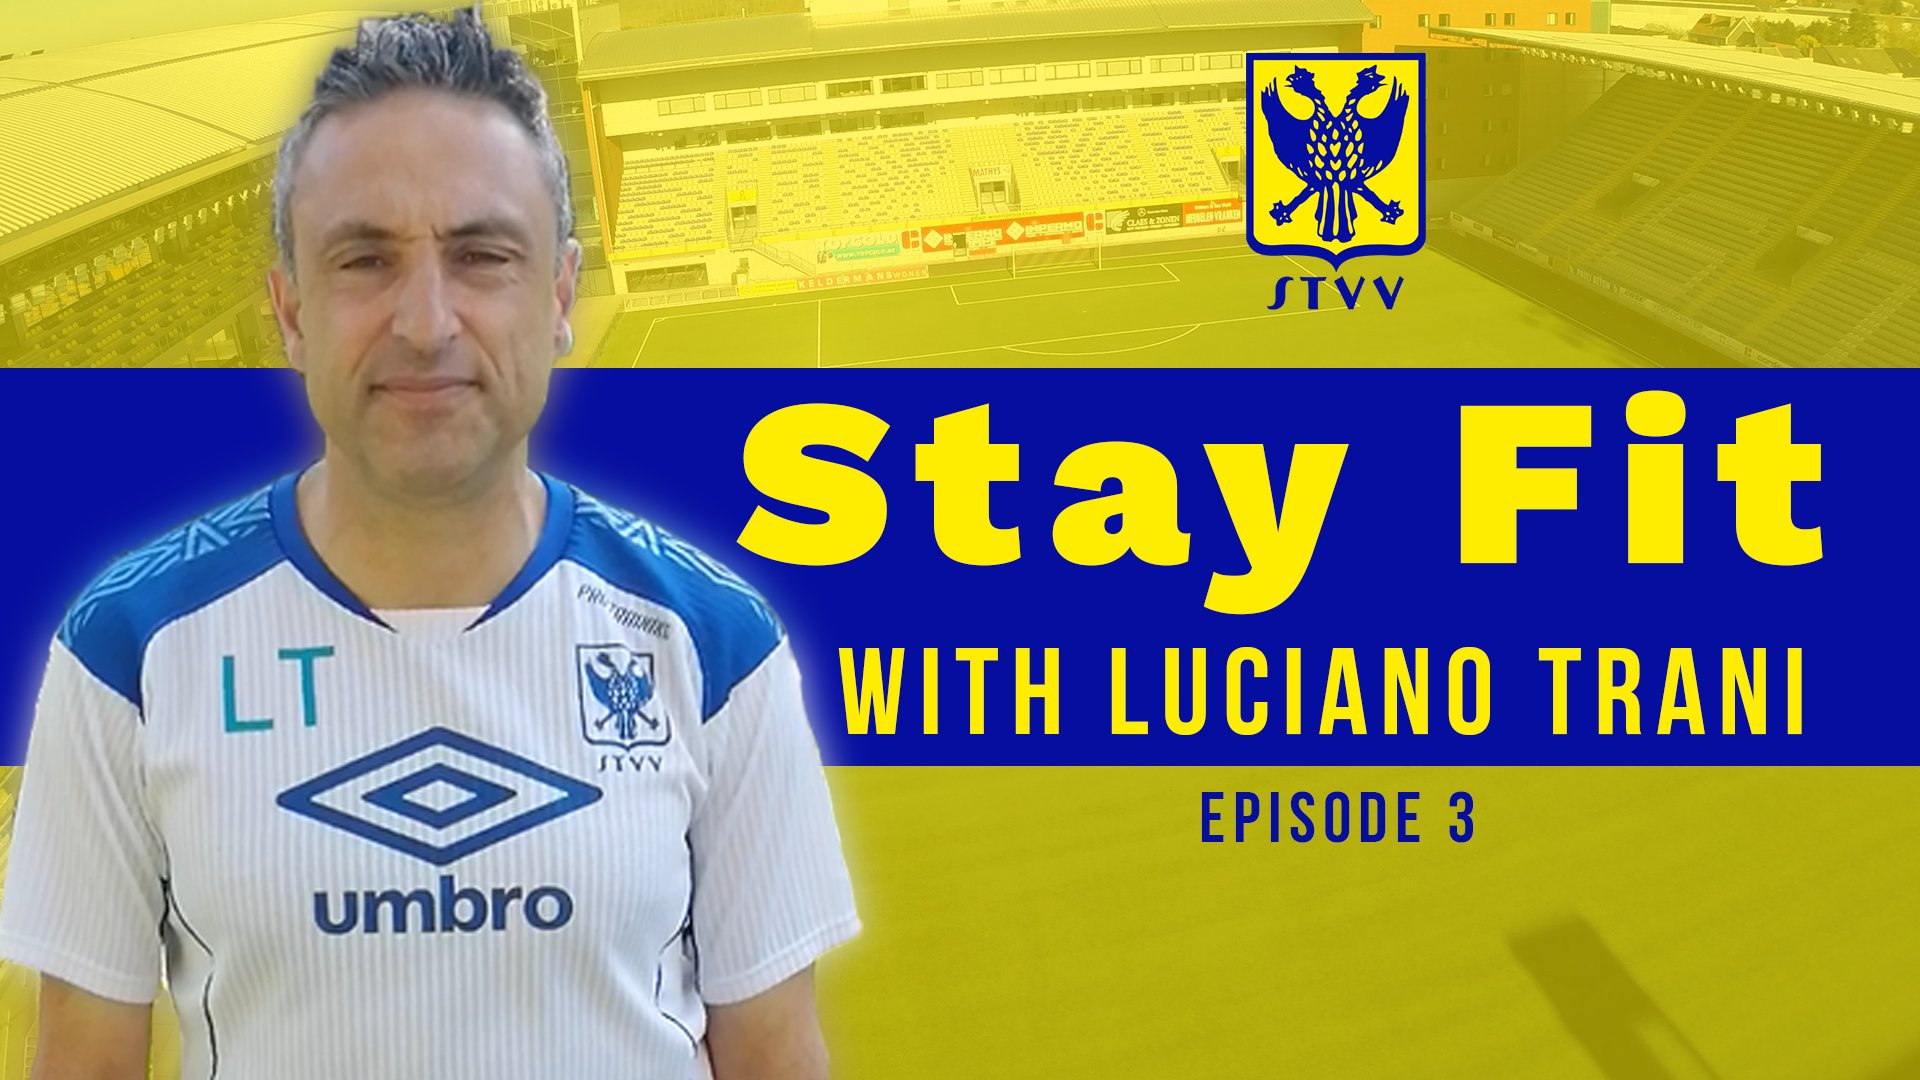 #StayFitWithLuc: Episode 3